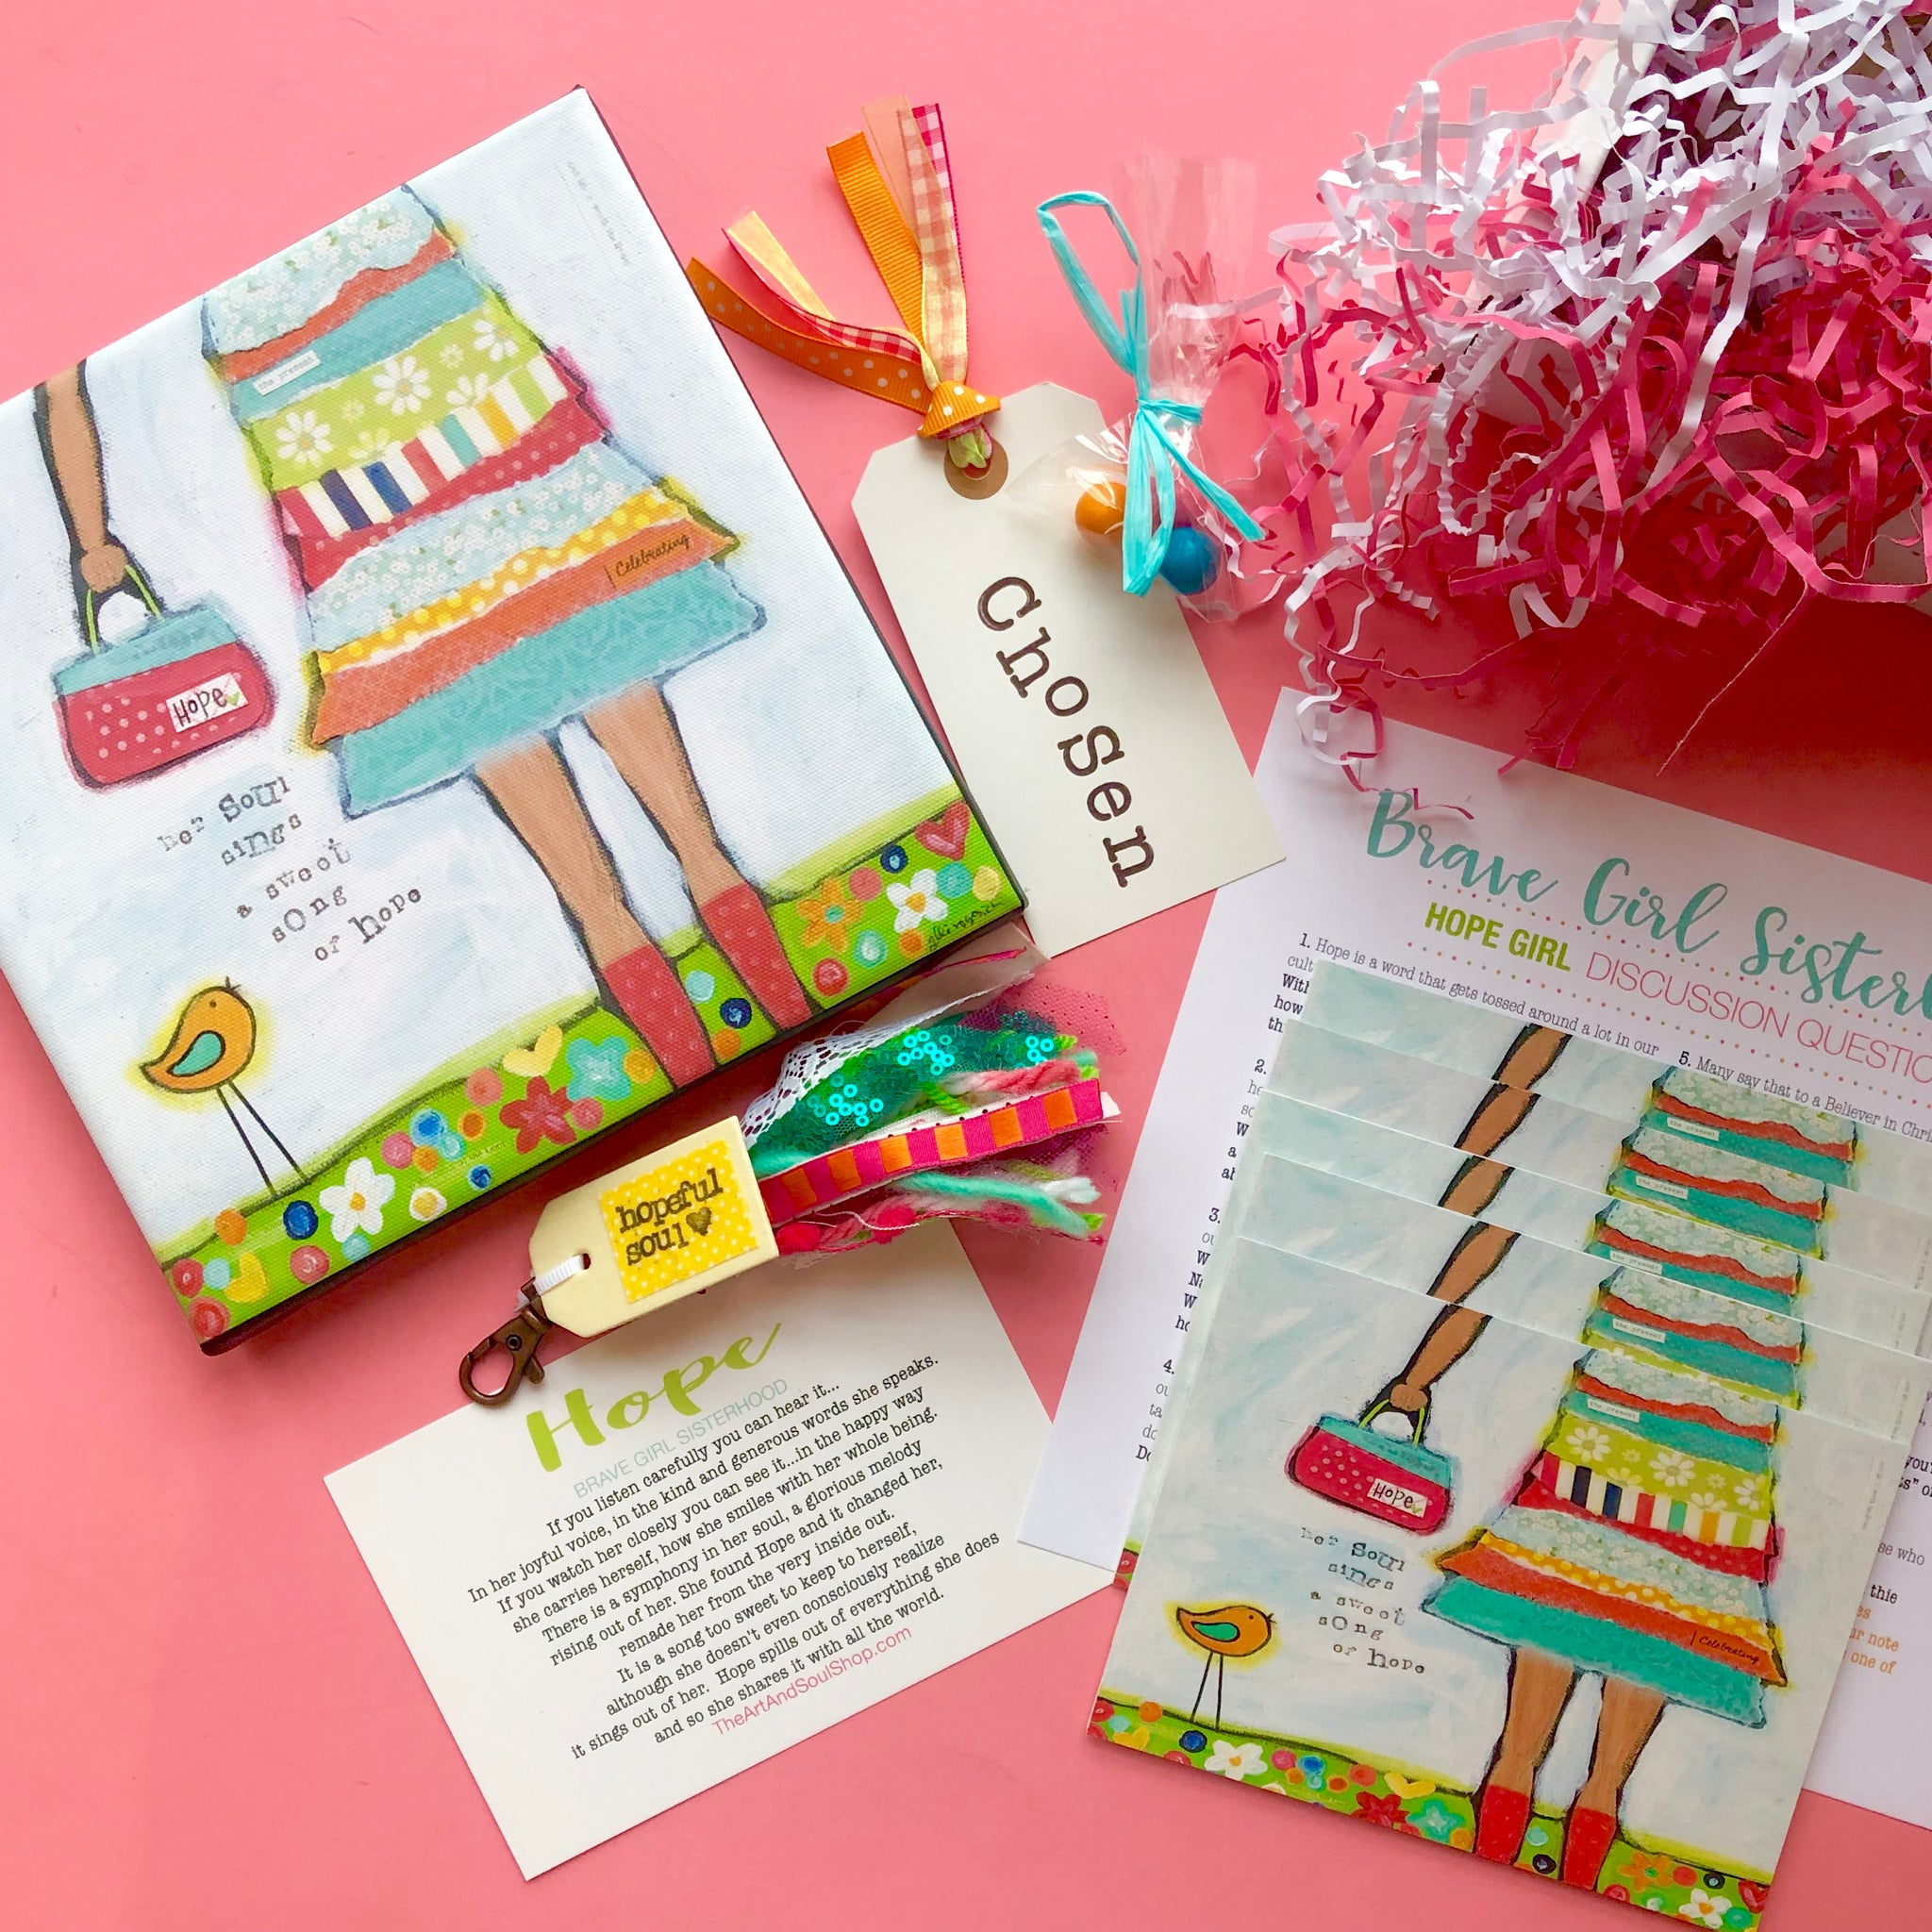 Brave Girl Sisterhood Subscription Box: January edition. Girls Bible Study Monthly gift box.